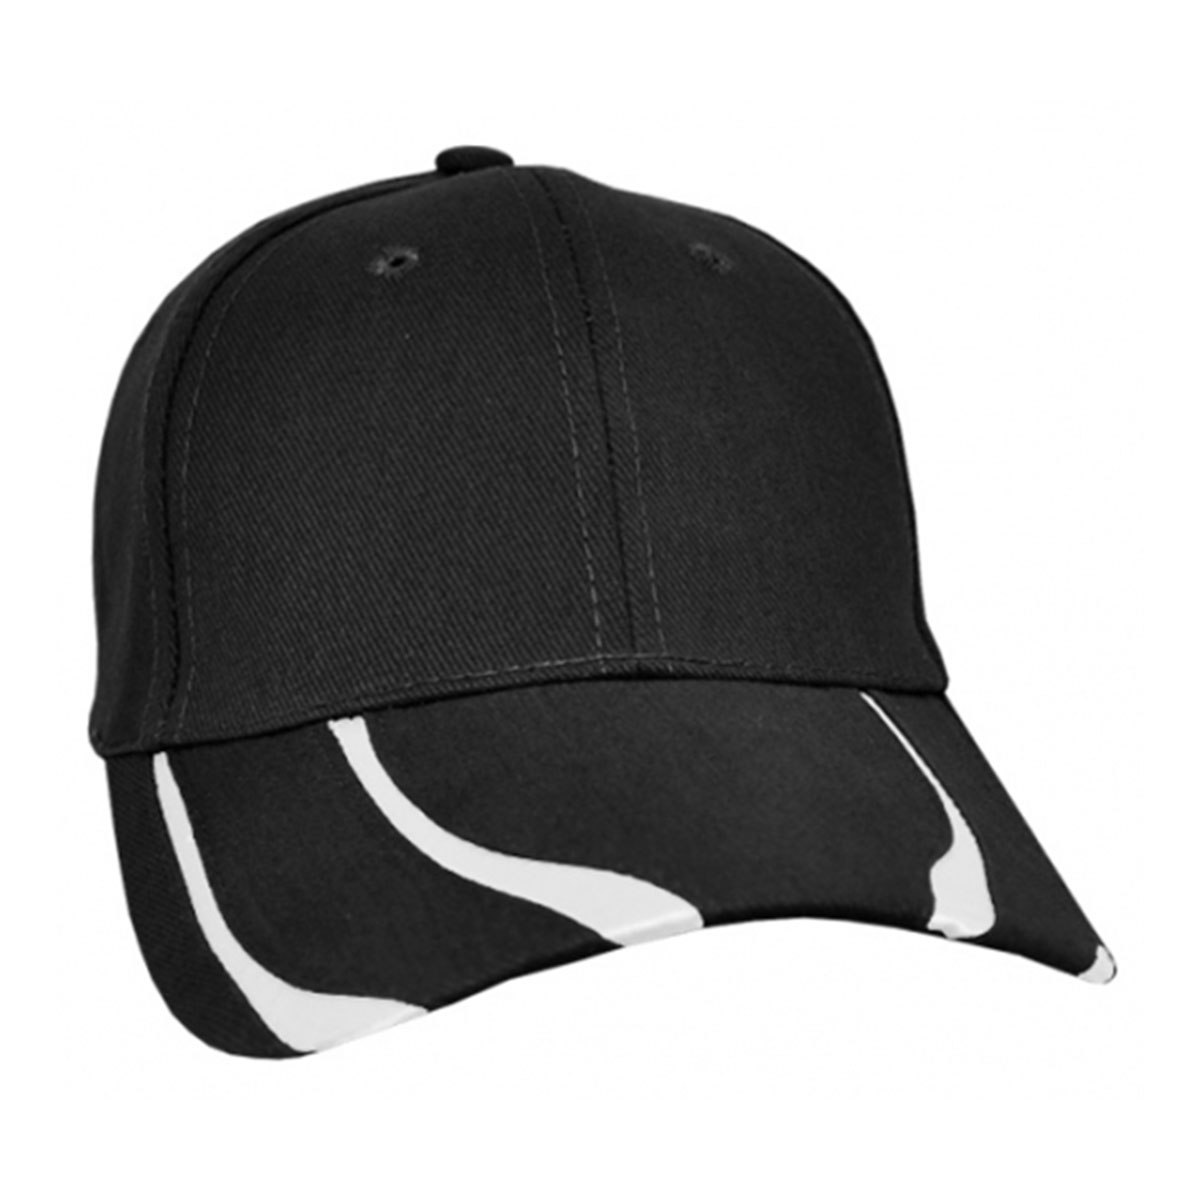 Striker Cap-Black / White